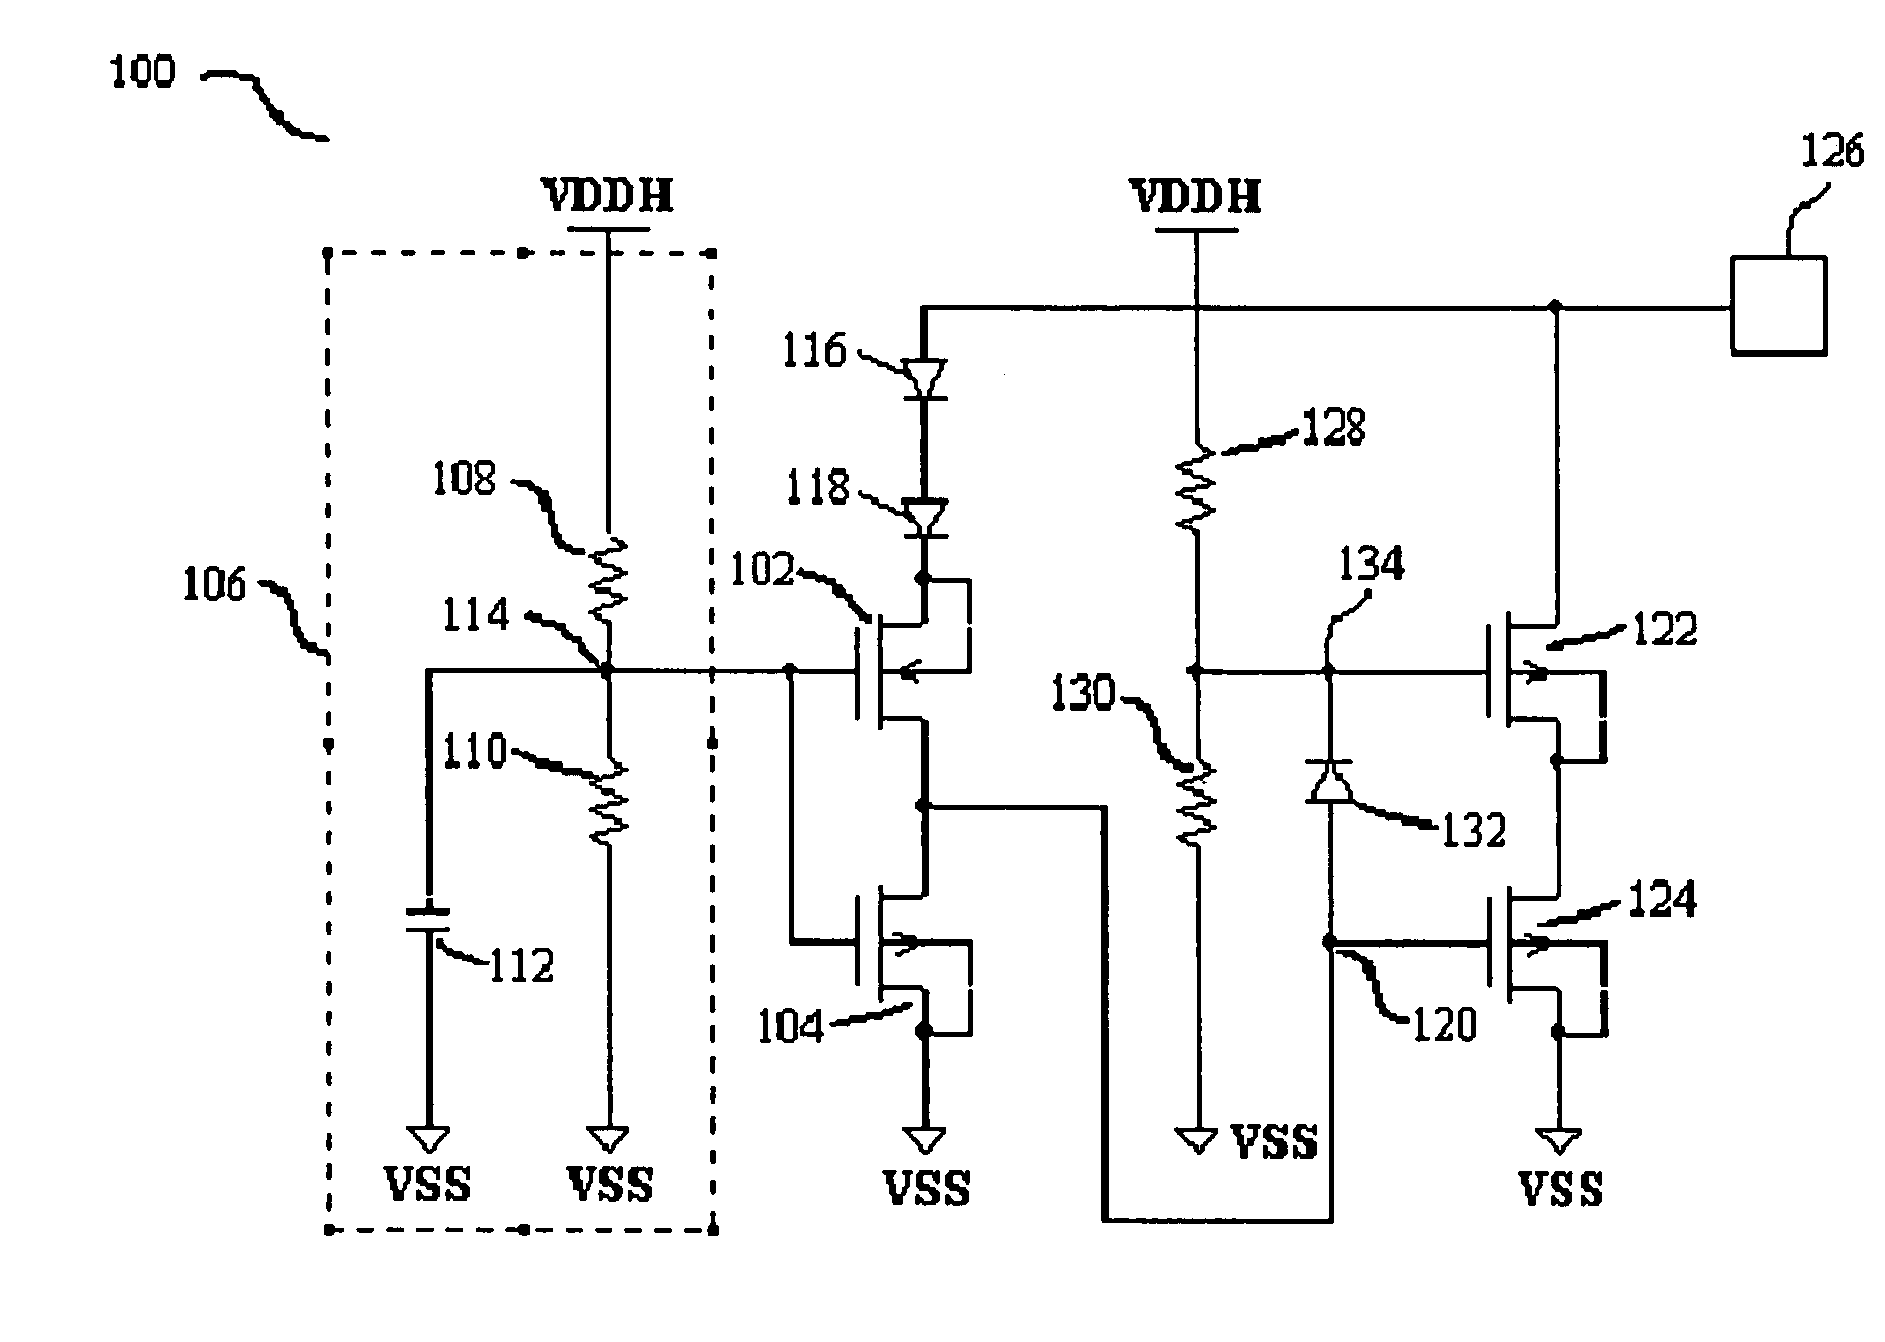 High Voltage Protection Circuit Diagram Lowvolts Alarm Tradeoficcom Patent Us7027276 Esd With Low